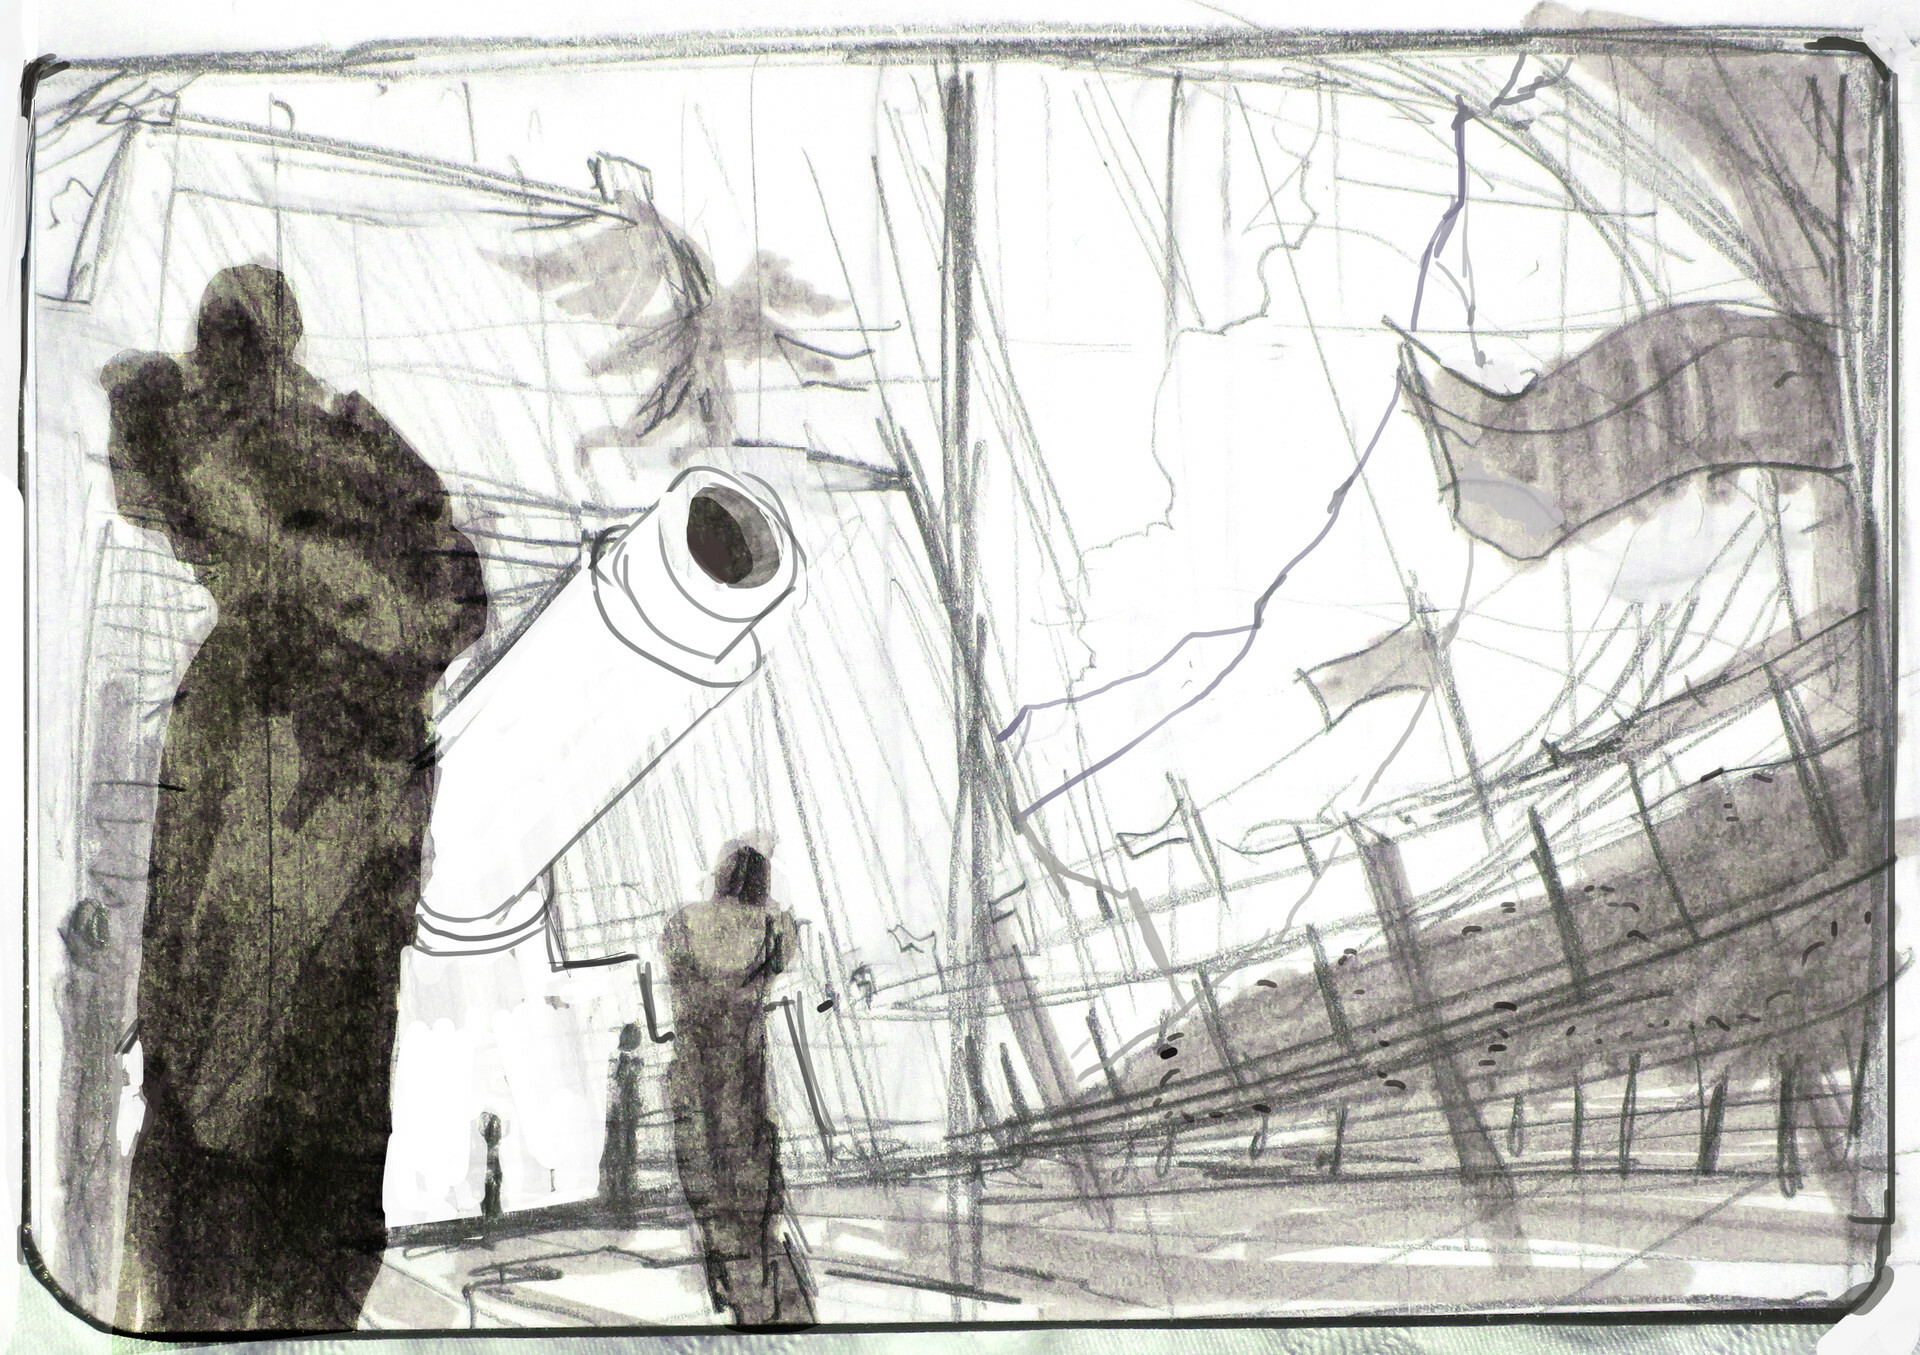 Composition sketch, I decided to reduce the importance of the cannon.